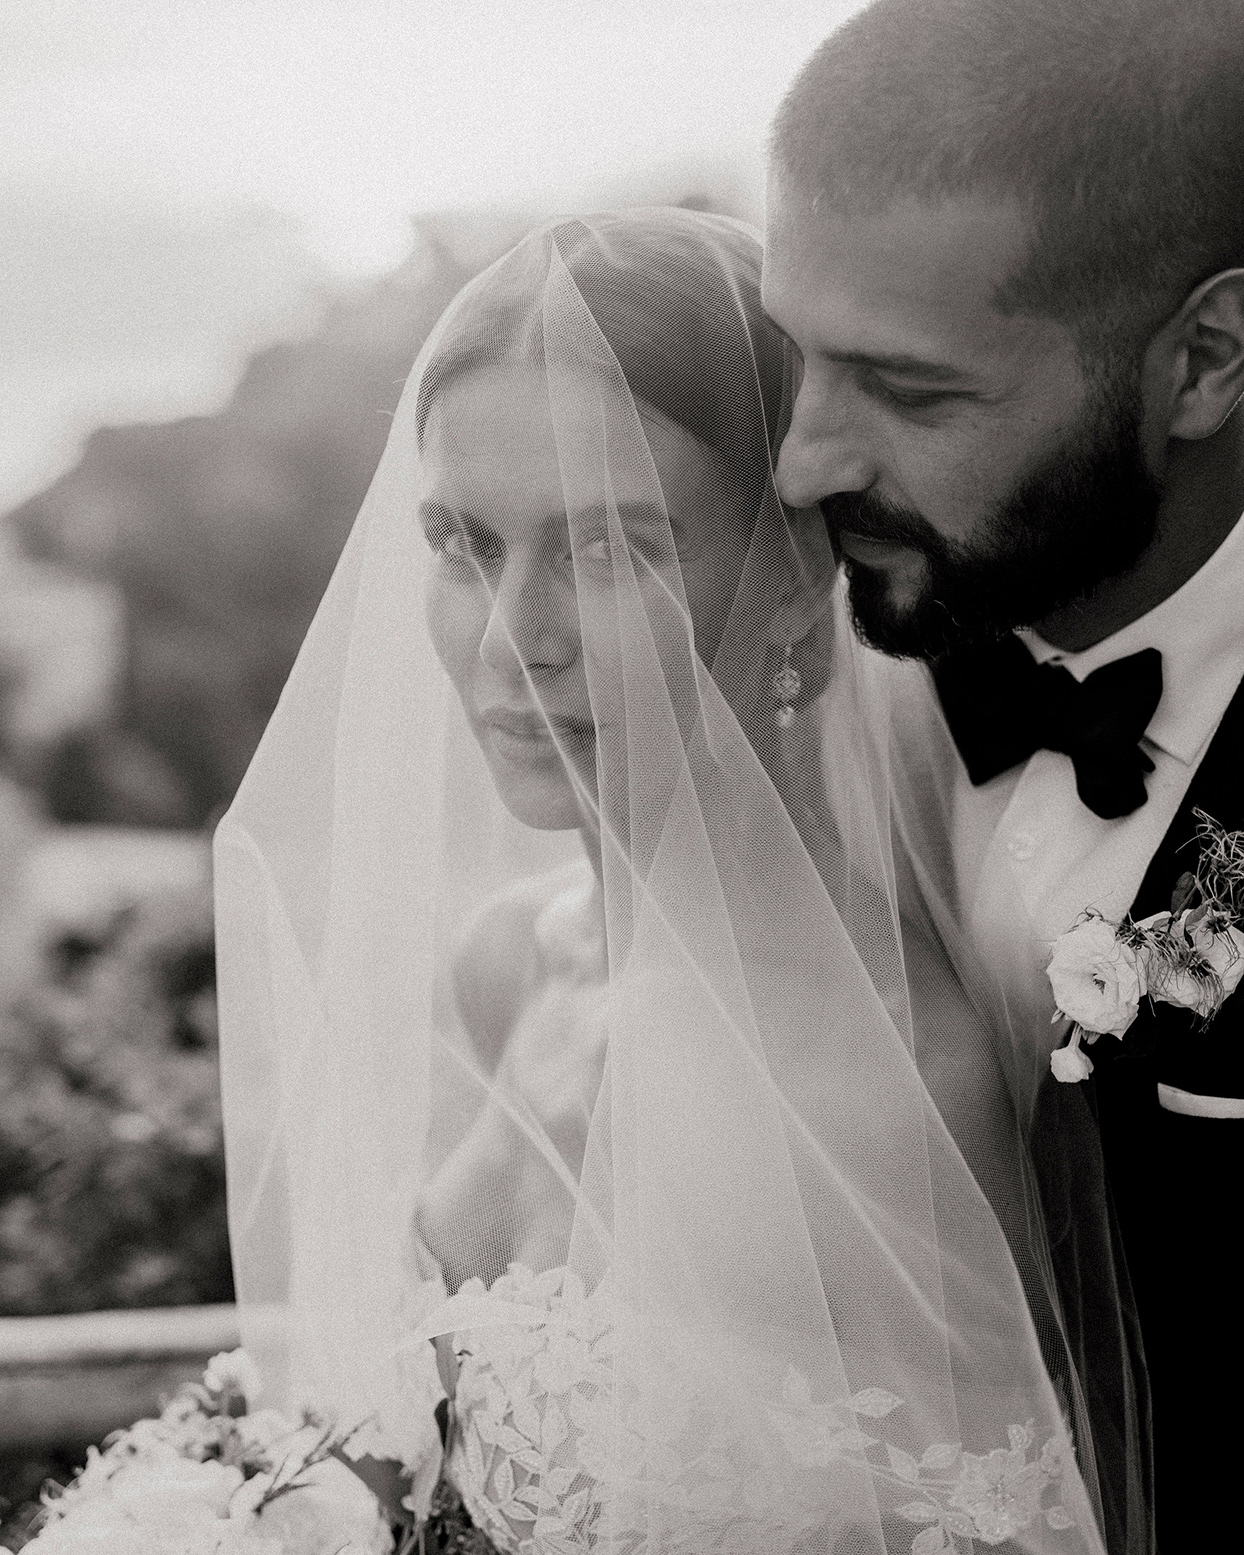 jaclyn antonio wedding bride and groom black and white